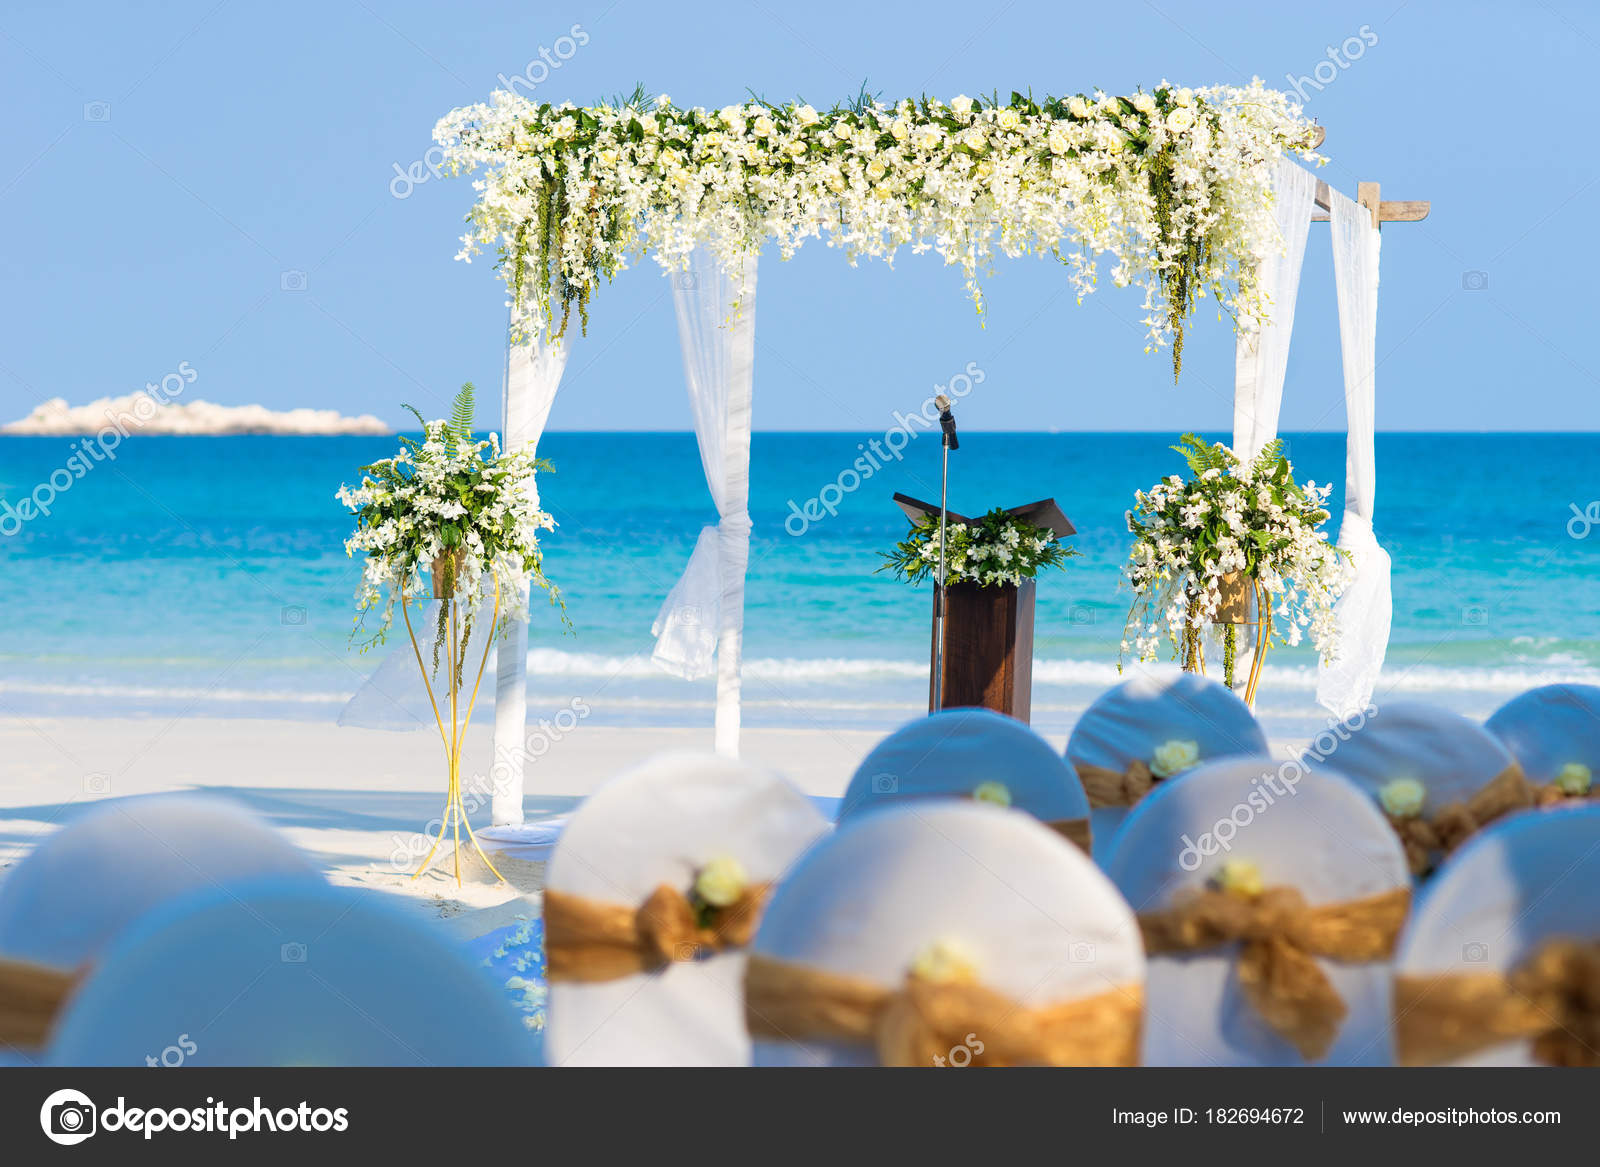 Floral flowers wedding arches decoration wedding altar beach wedding floral flowers wedding arches decoration wedding altar beach wedding venue stock photo junglespirit